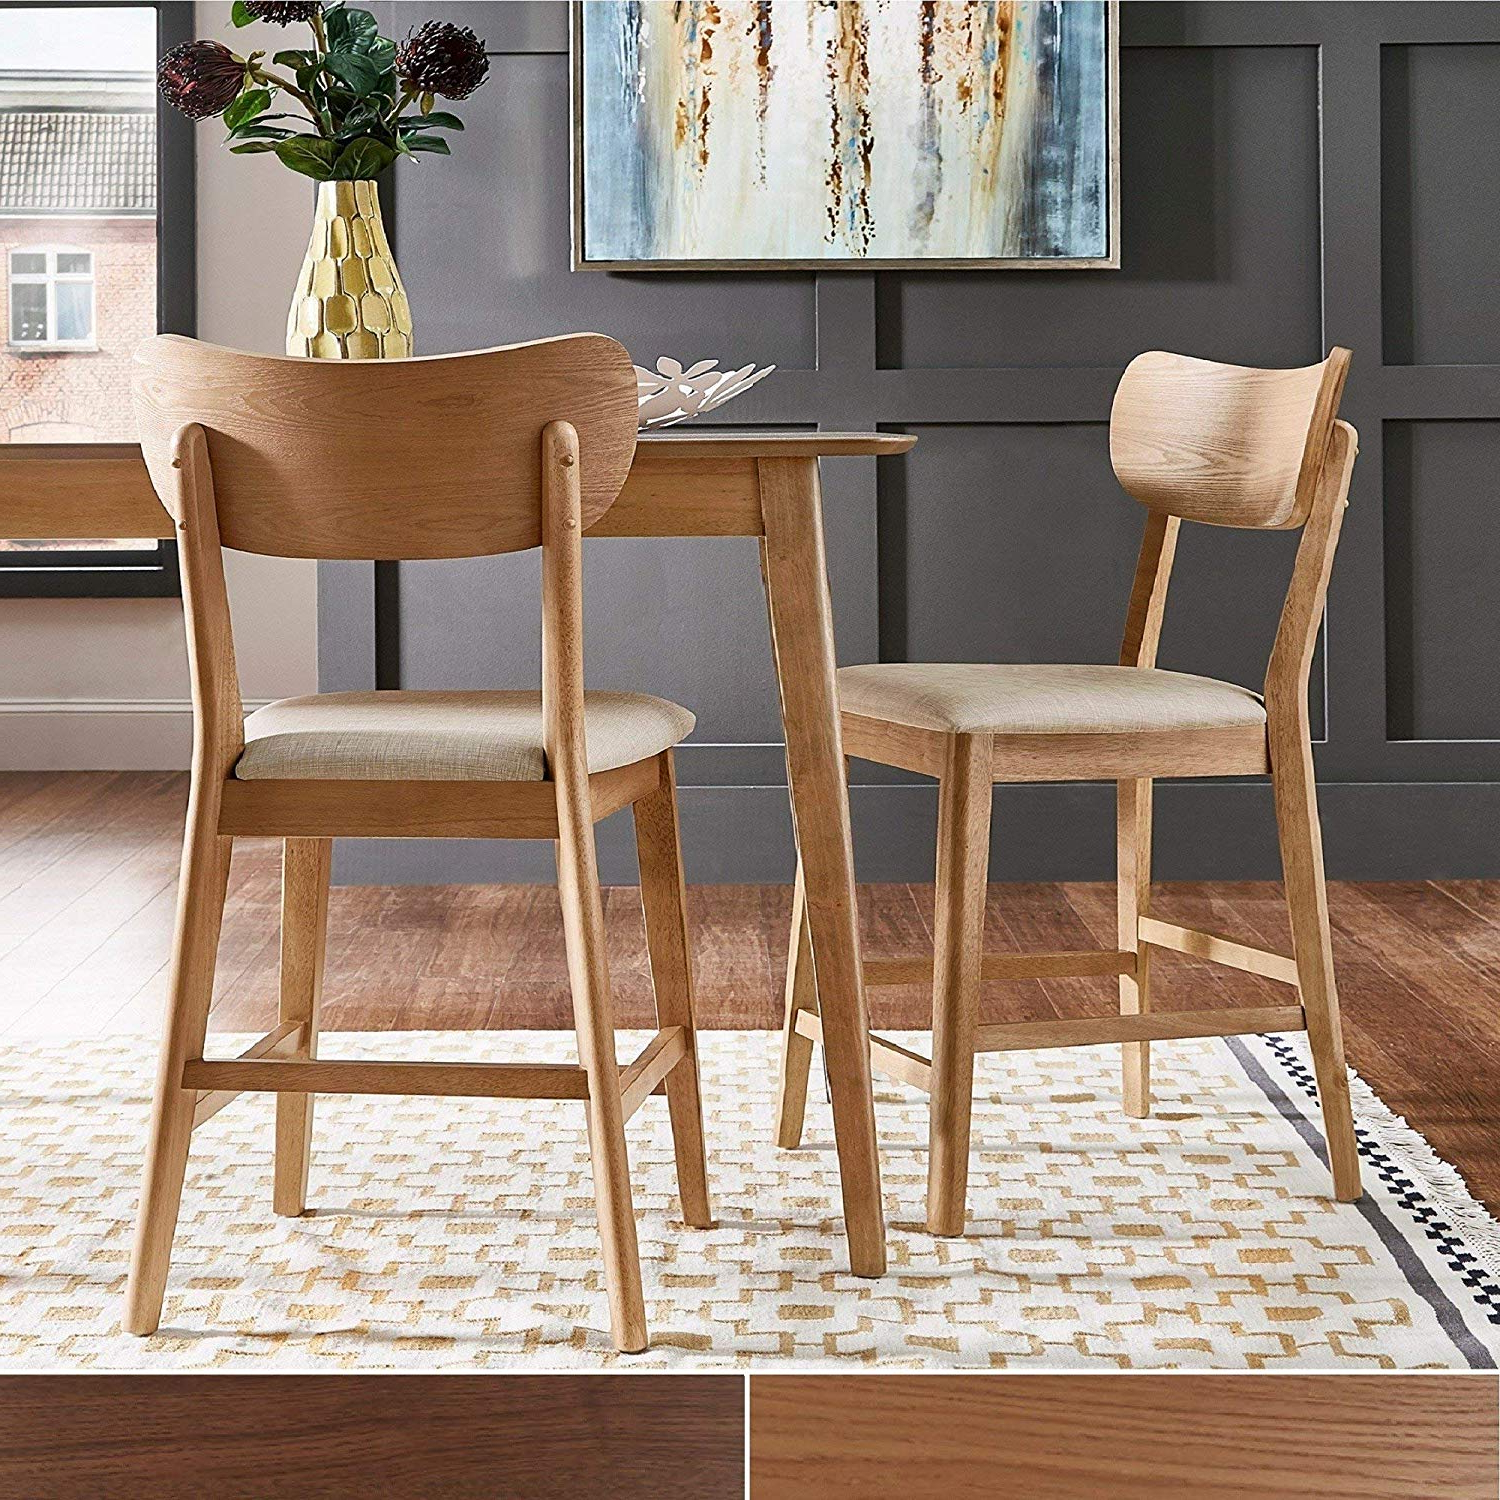 Fashionable Penelope 3 Piece Counter Height Wood Dining Sets Pertaining To Amazon – Inspire Q Penelope Danish Modern Tapered Leg Counter (Gallery 8 of 20)